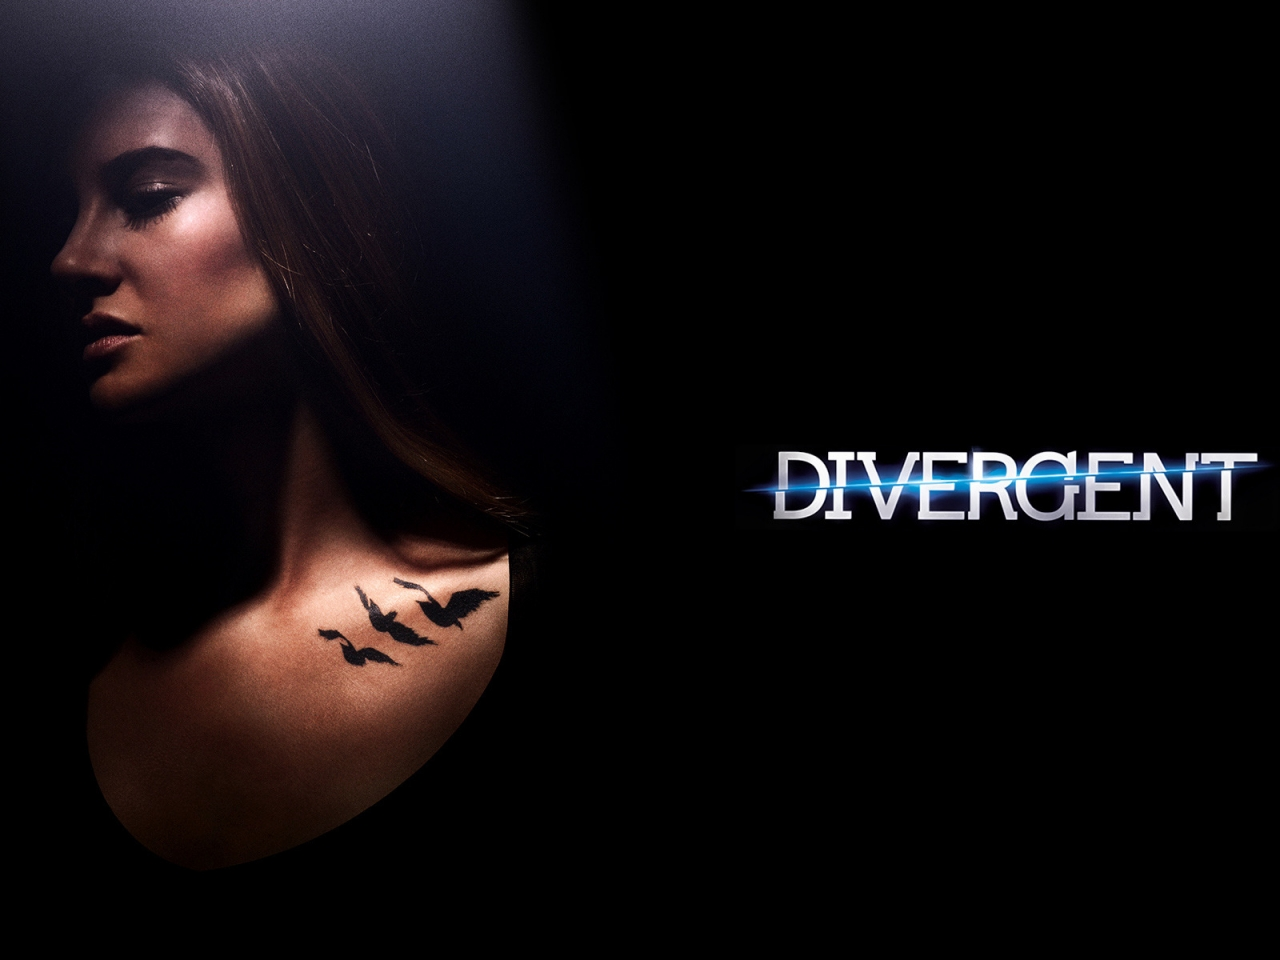 Divergent 2014 Film for 1280 x 960 resolution